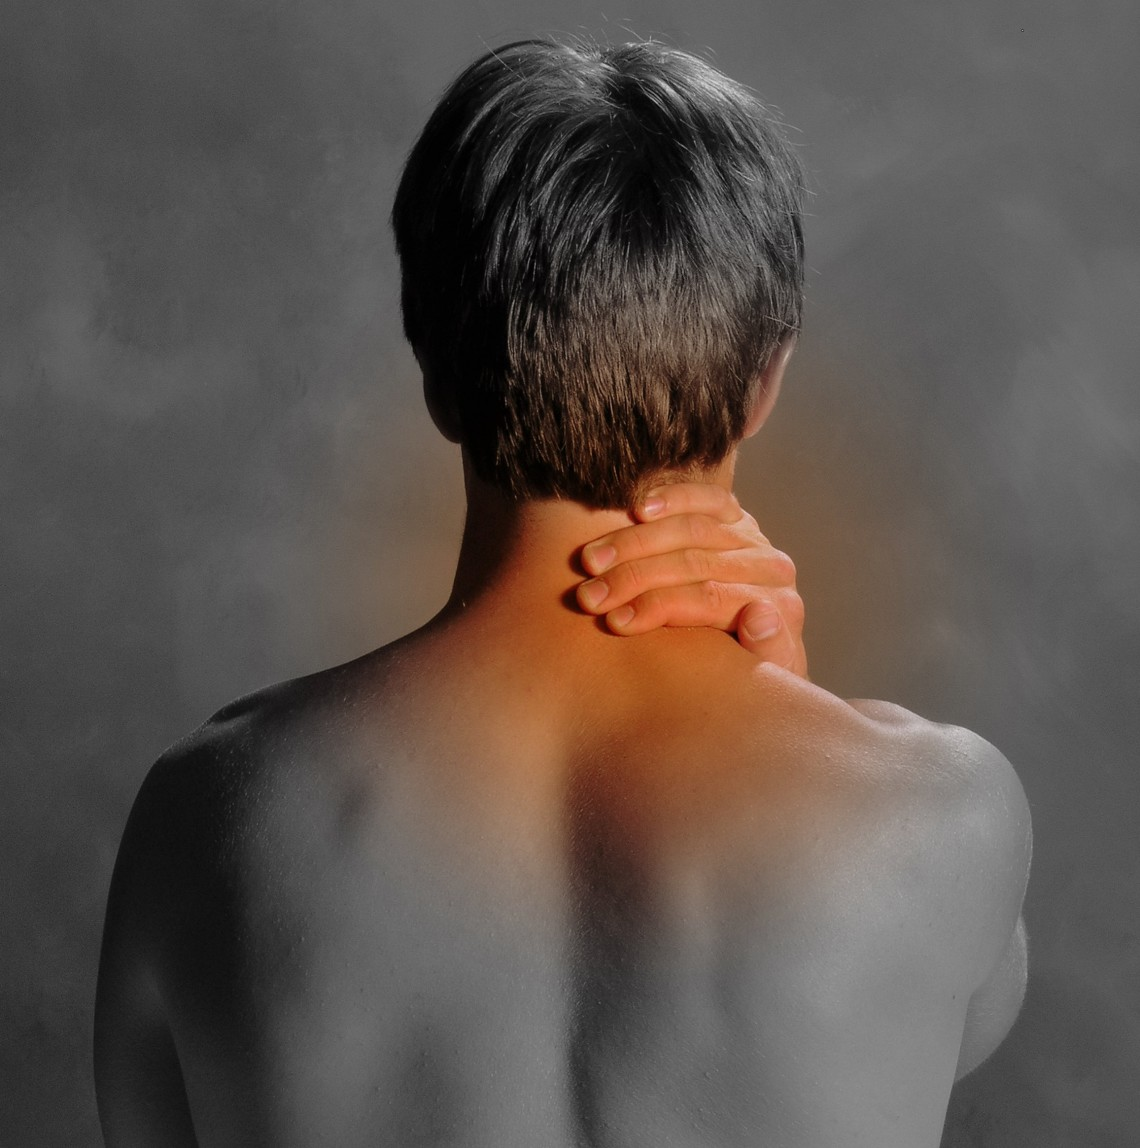 Neck pain management chiropractic service in Burnaby Heights near Boundary road and Hastings Street.